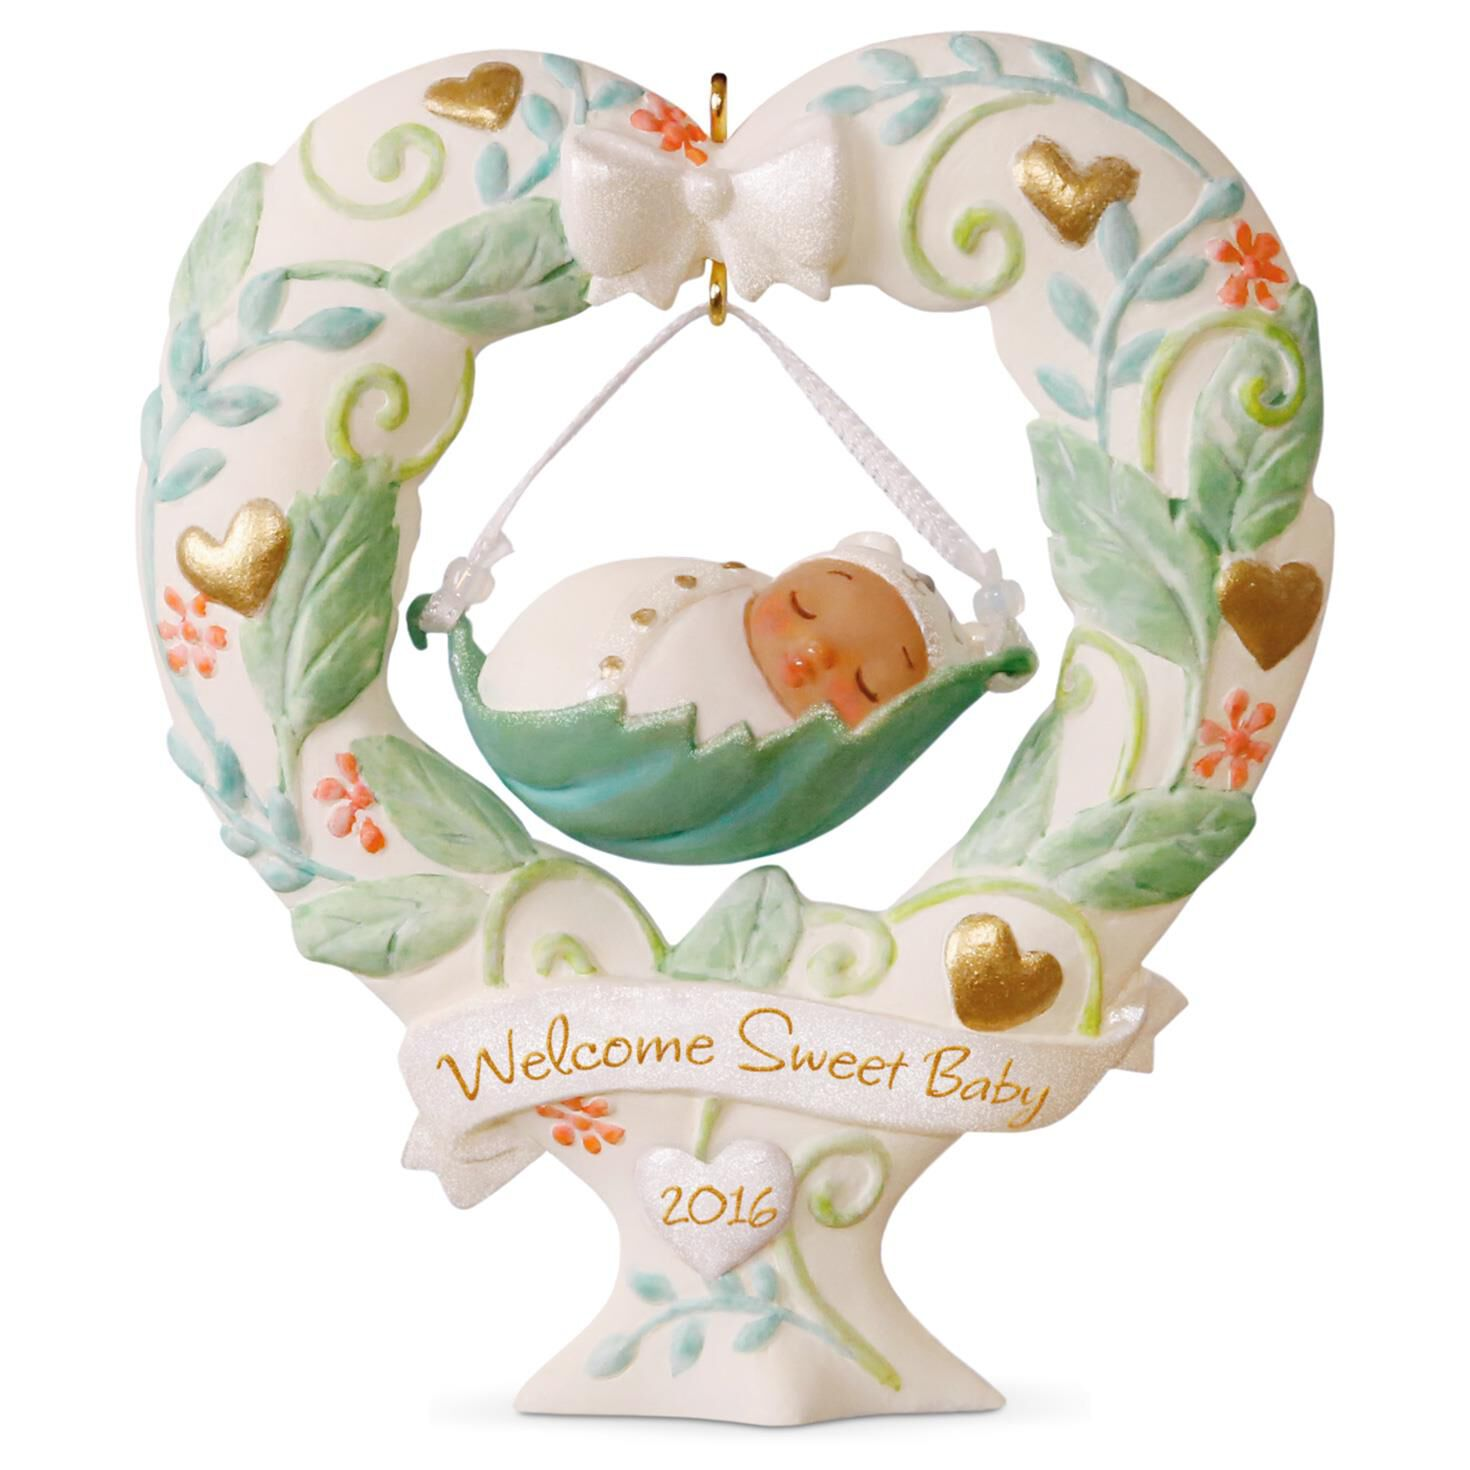 Baby s First Christmas Heart Shaped Baby Swing Ornament Keepsake